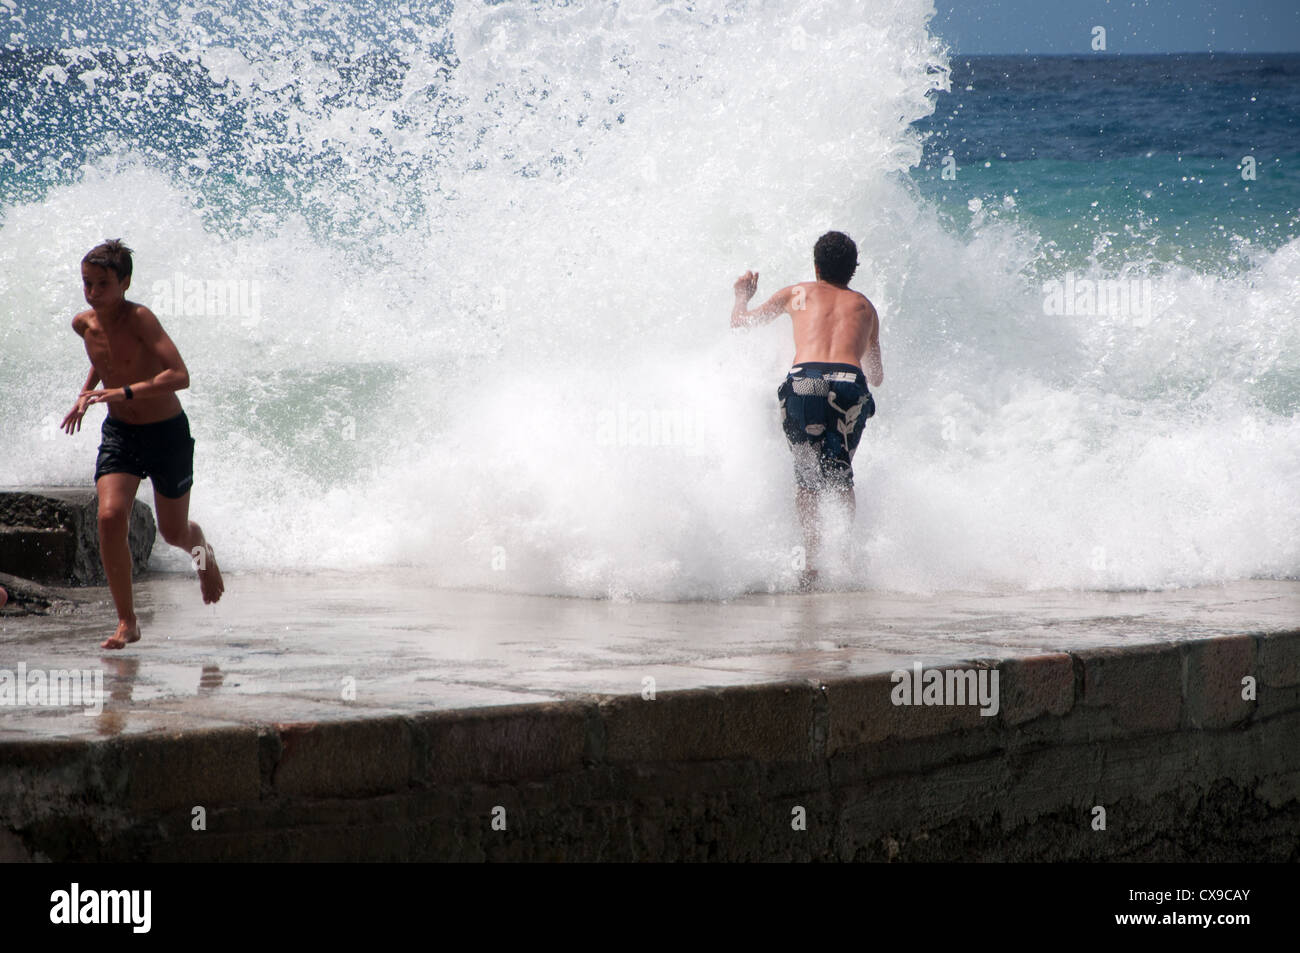 Wave dodging in Vernazza, Italy - Stock Image